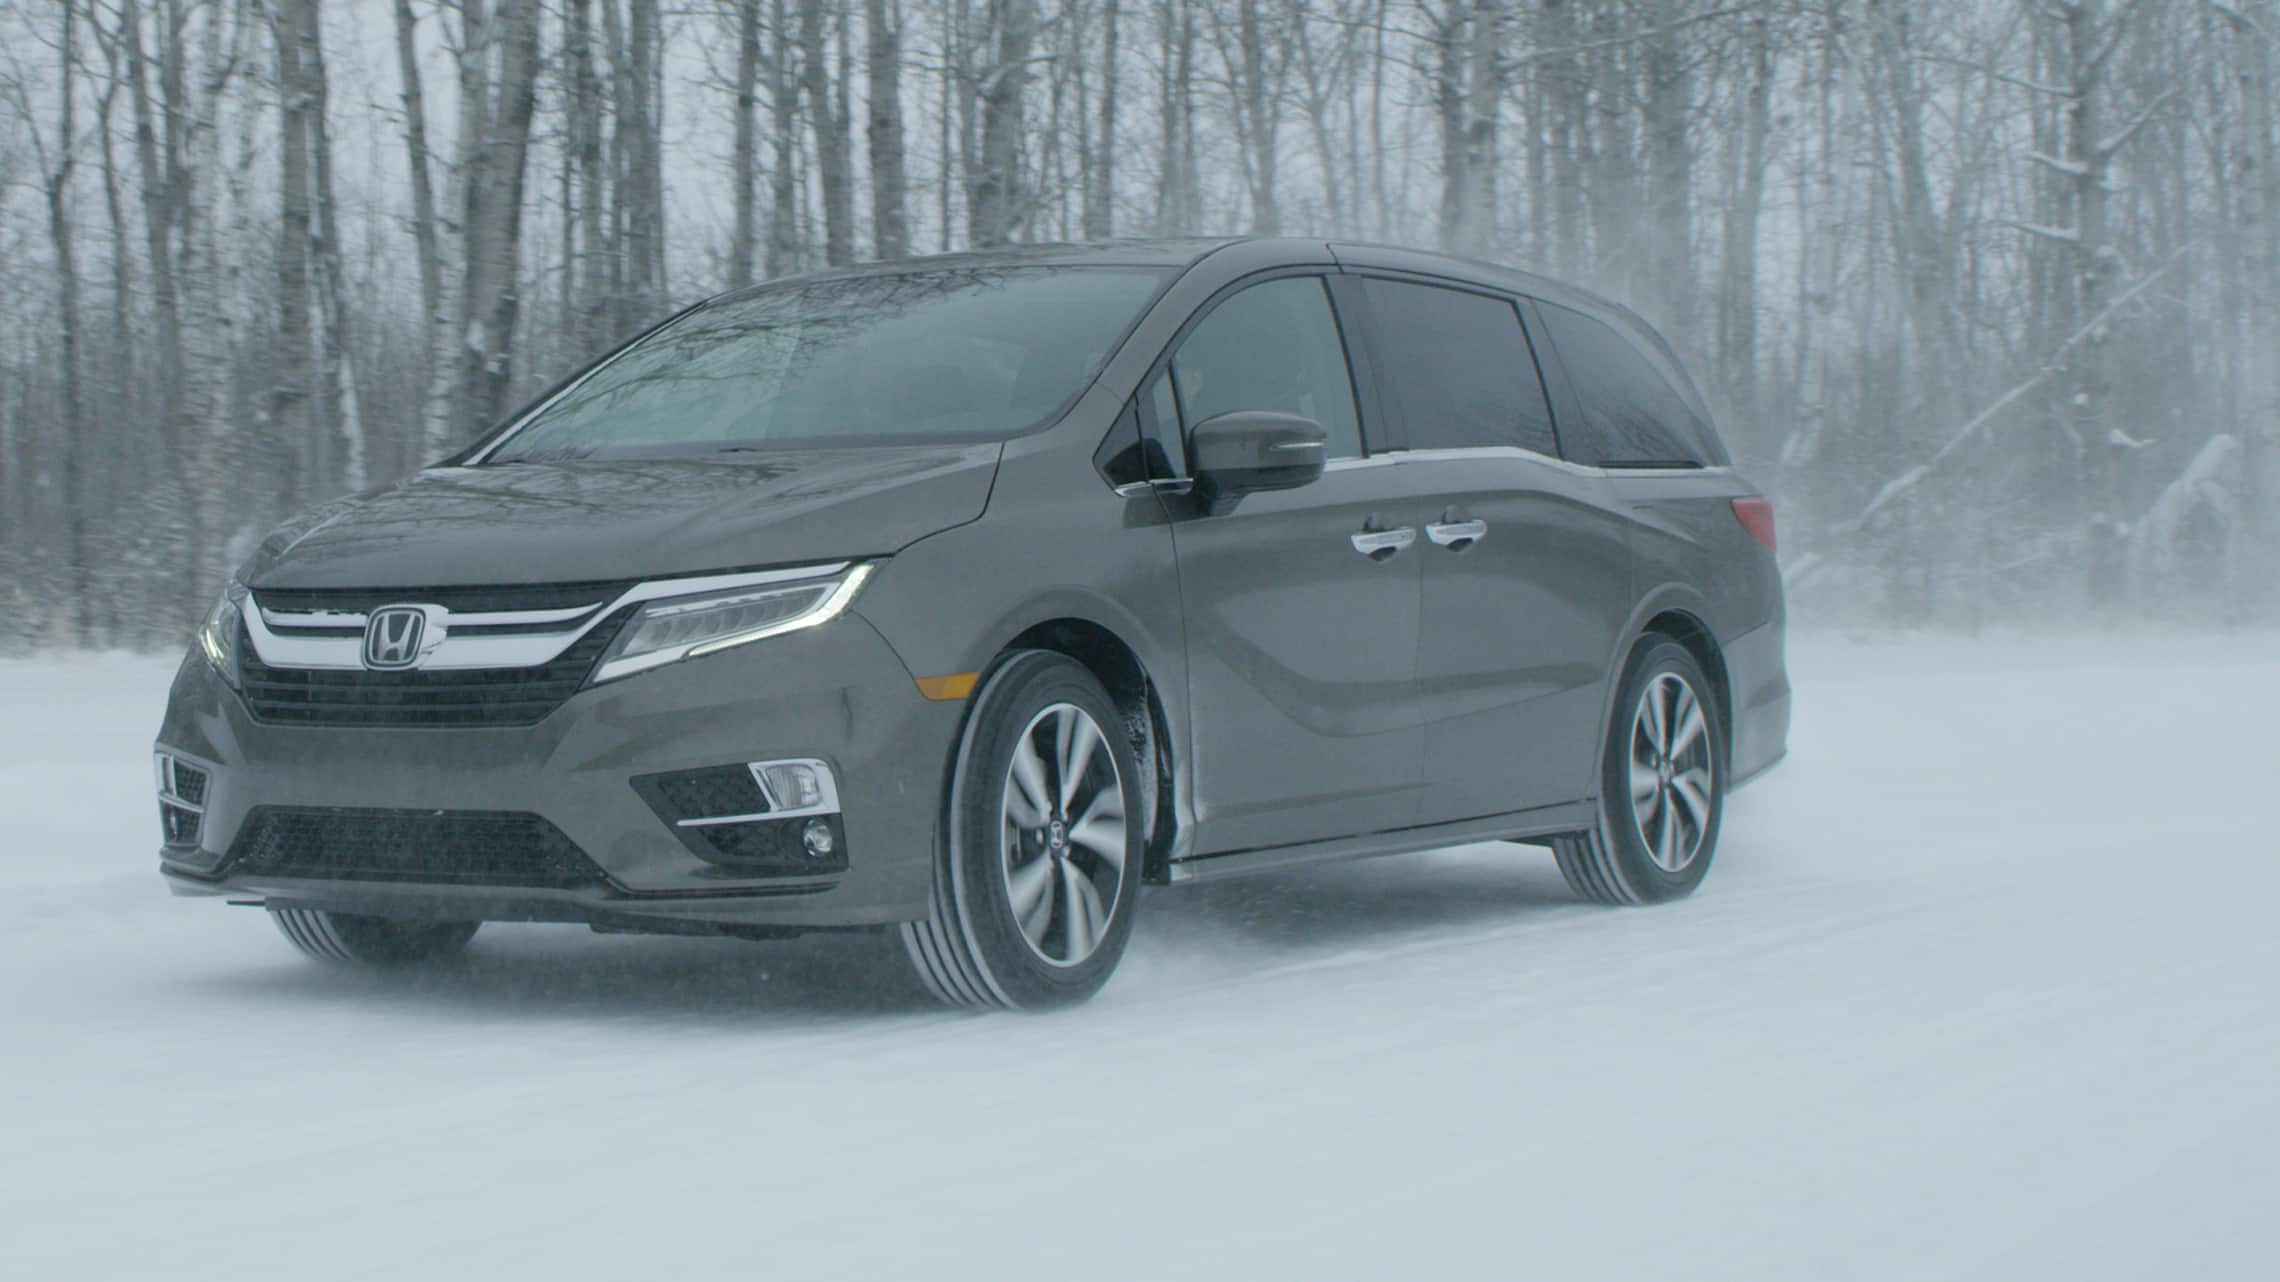 Front 3/4 driver-side view of 2020 Honda Odyssey in Modern Steel Metallic driving on snow covered road.